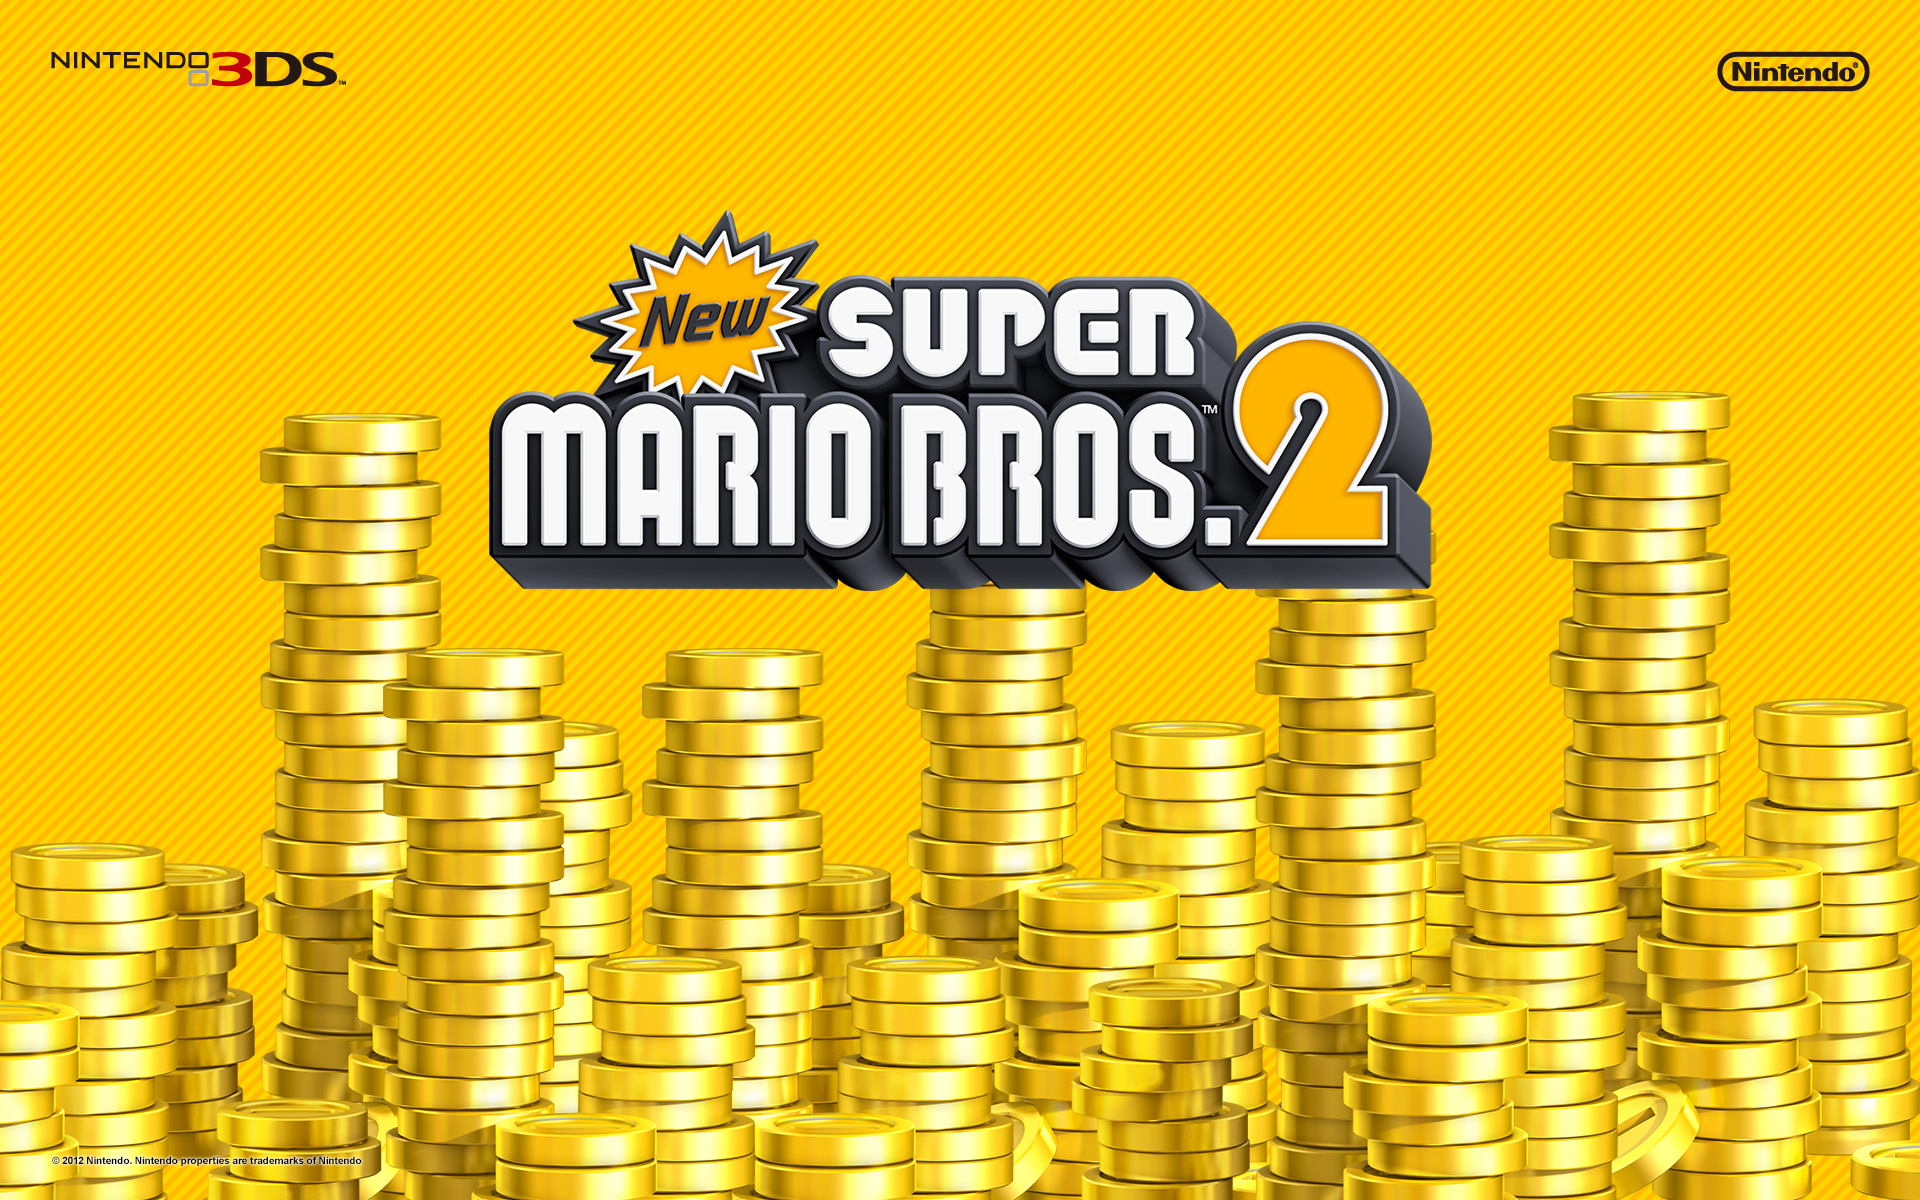 new super mario bros 2 collected coin total at 2 7. Black Bedroom Furniture Sets. Home Design Ideas